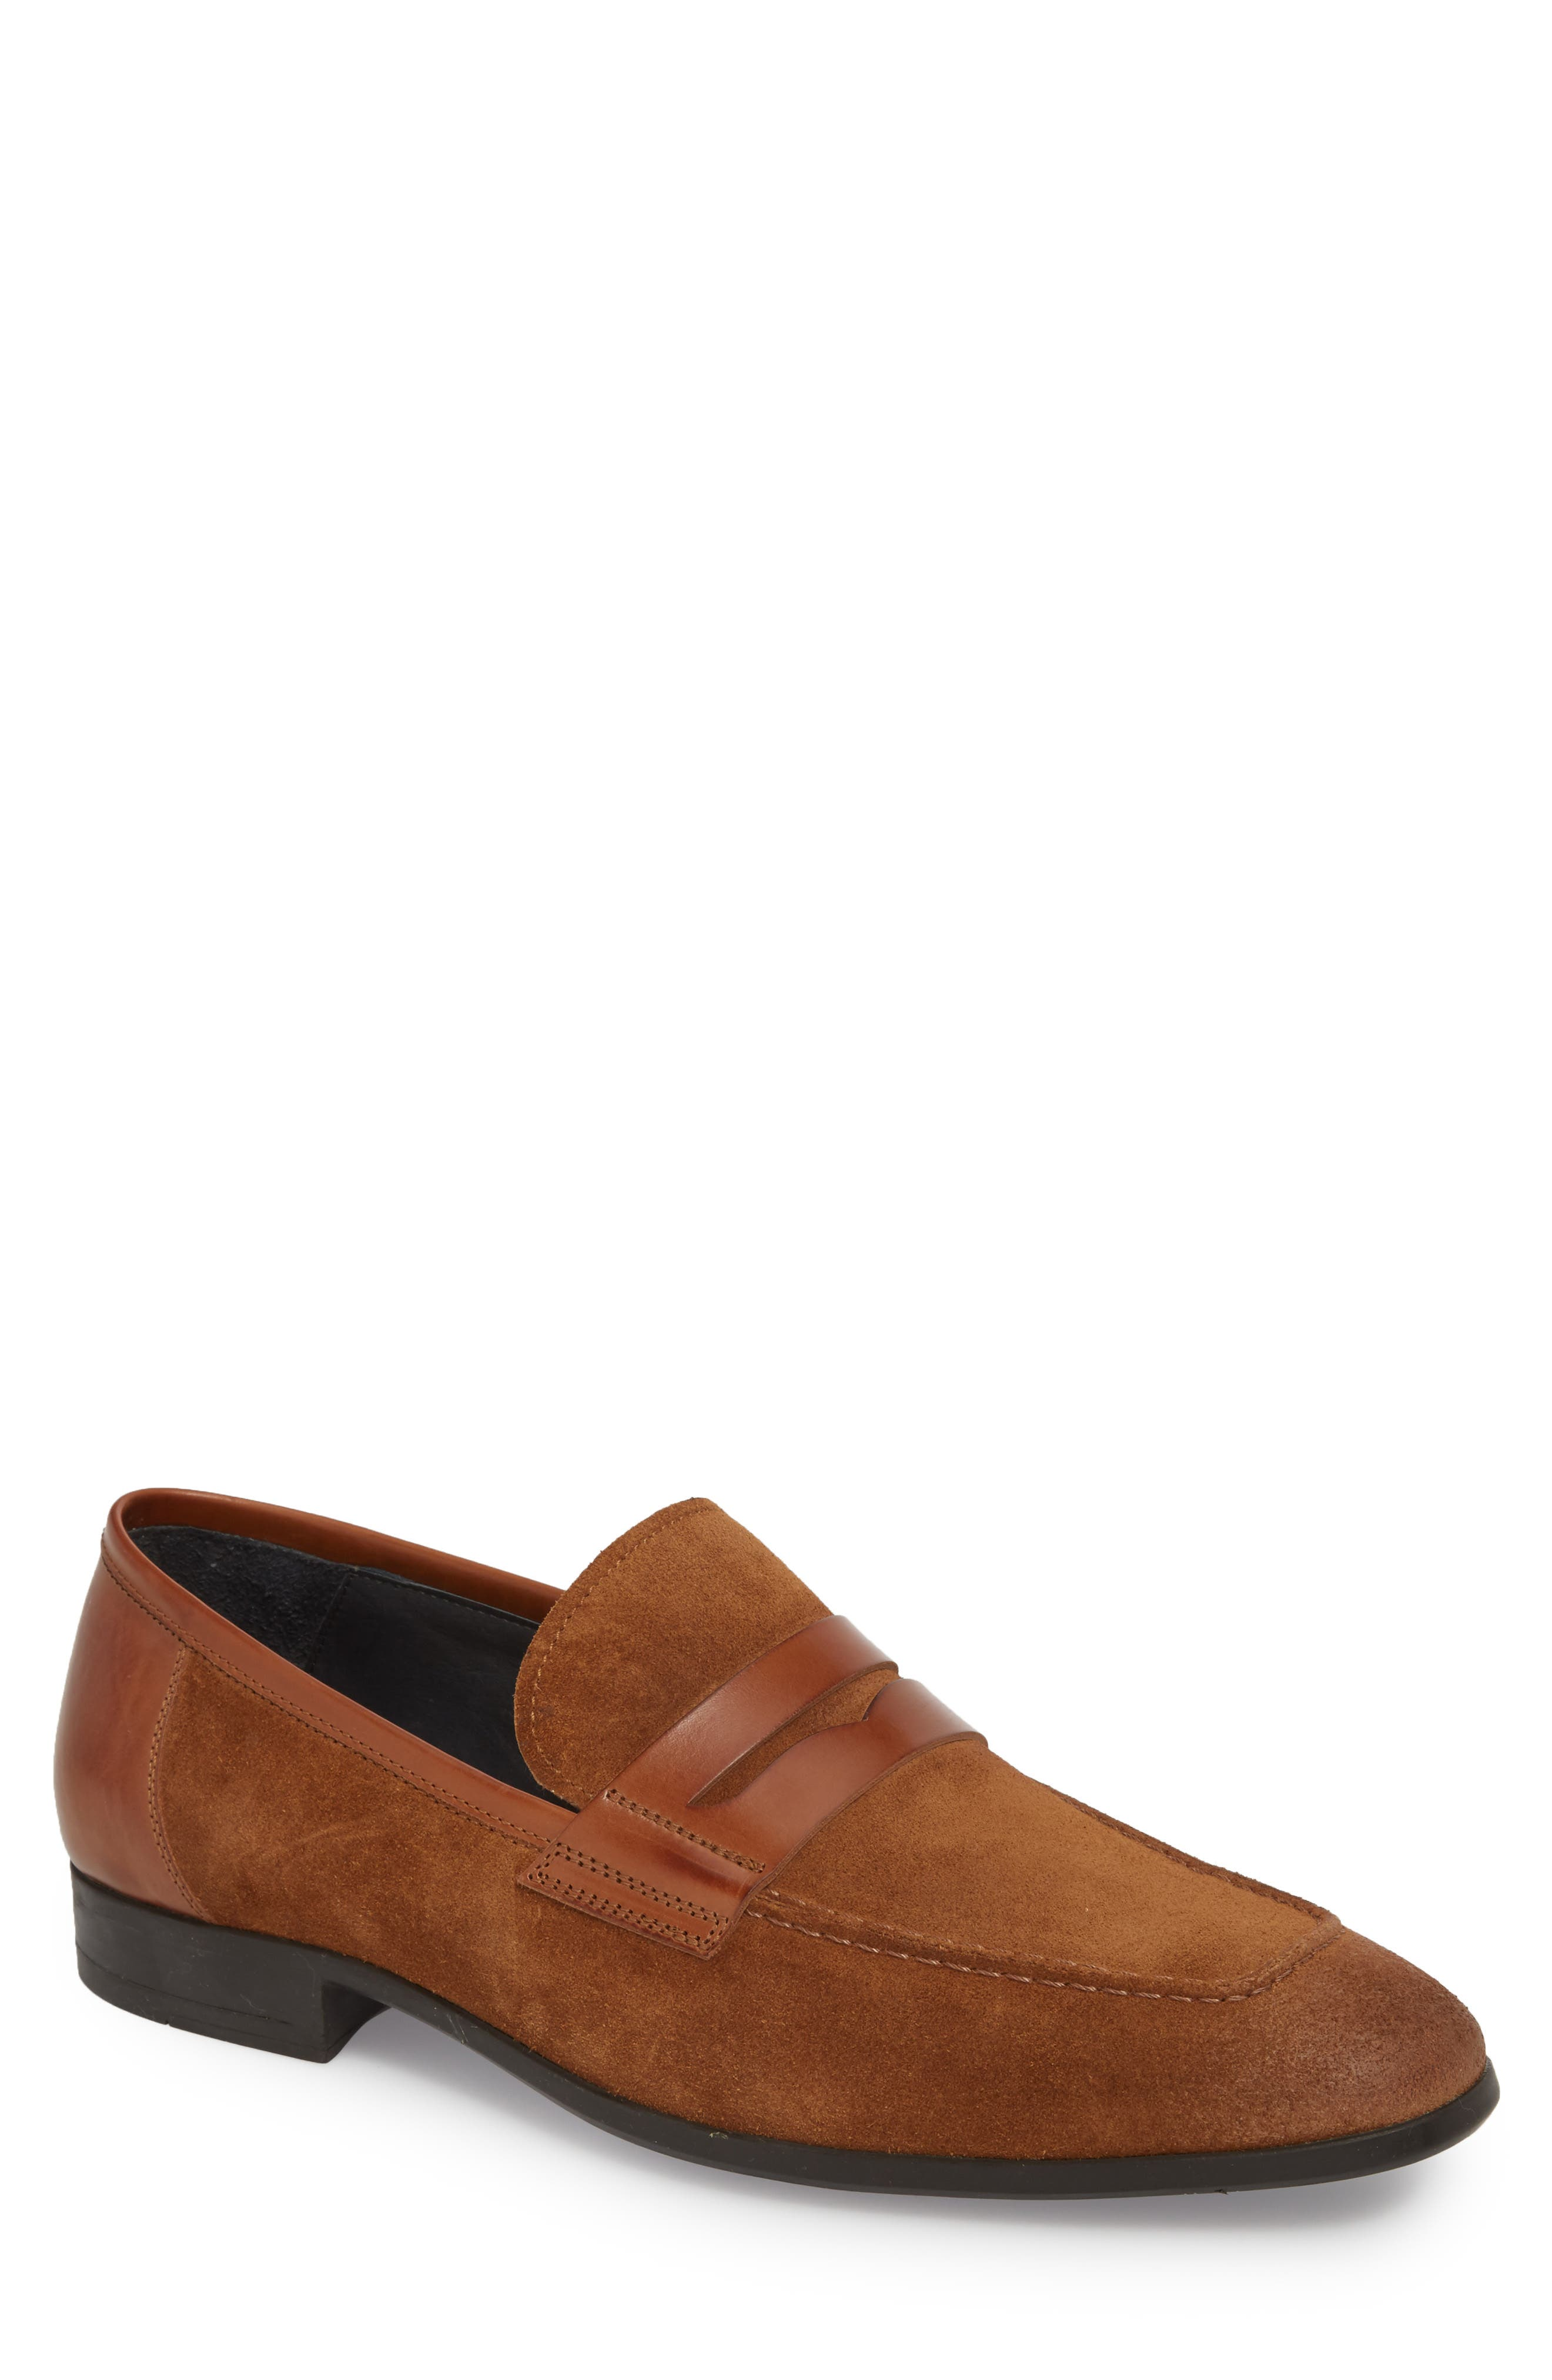 Powell Penny Loafer,                         Main,                         color, 200